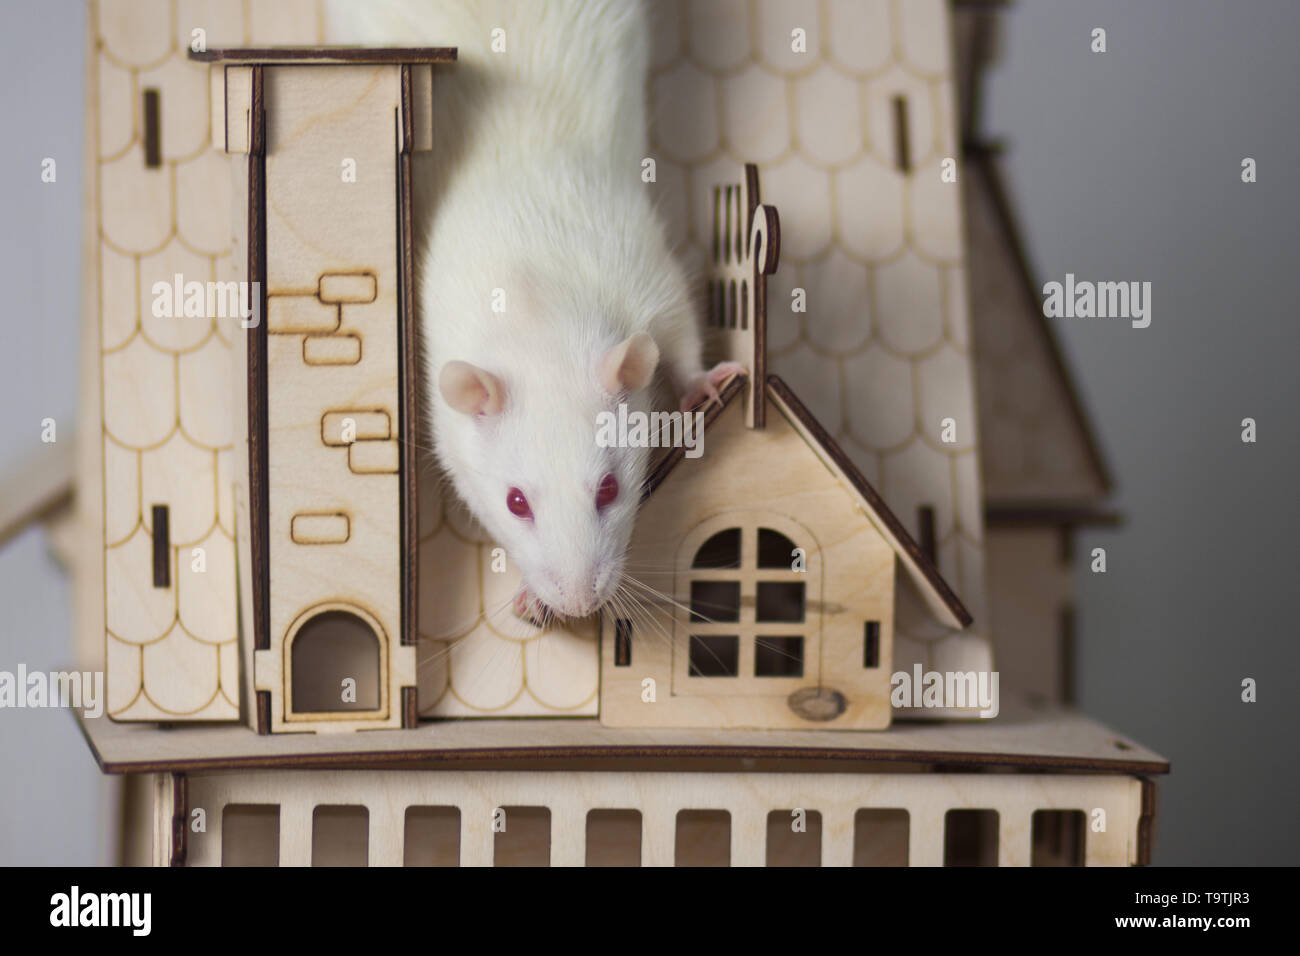 White rat in a wooden house. Mouse Palace. Rodent sitting on the roof. - Stock Image